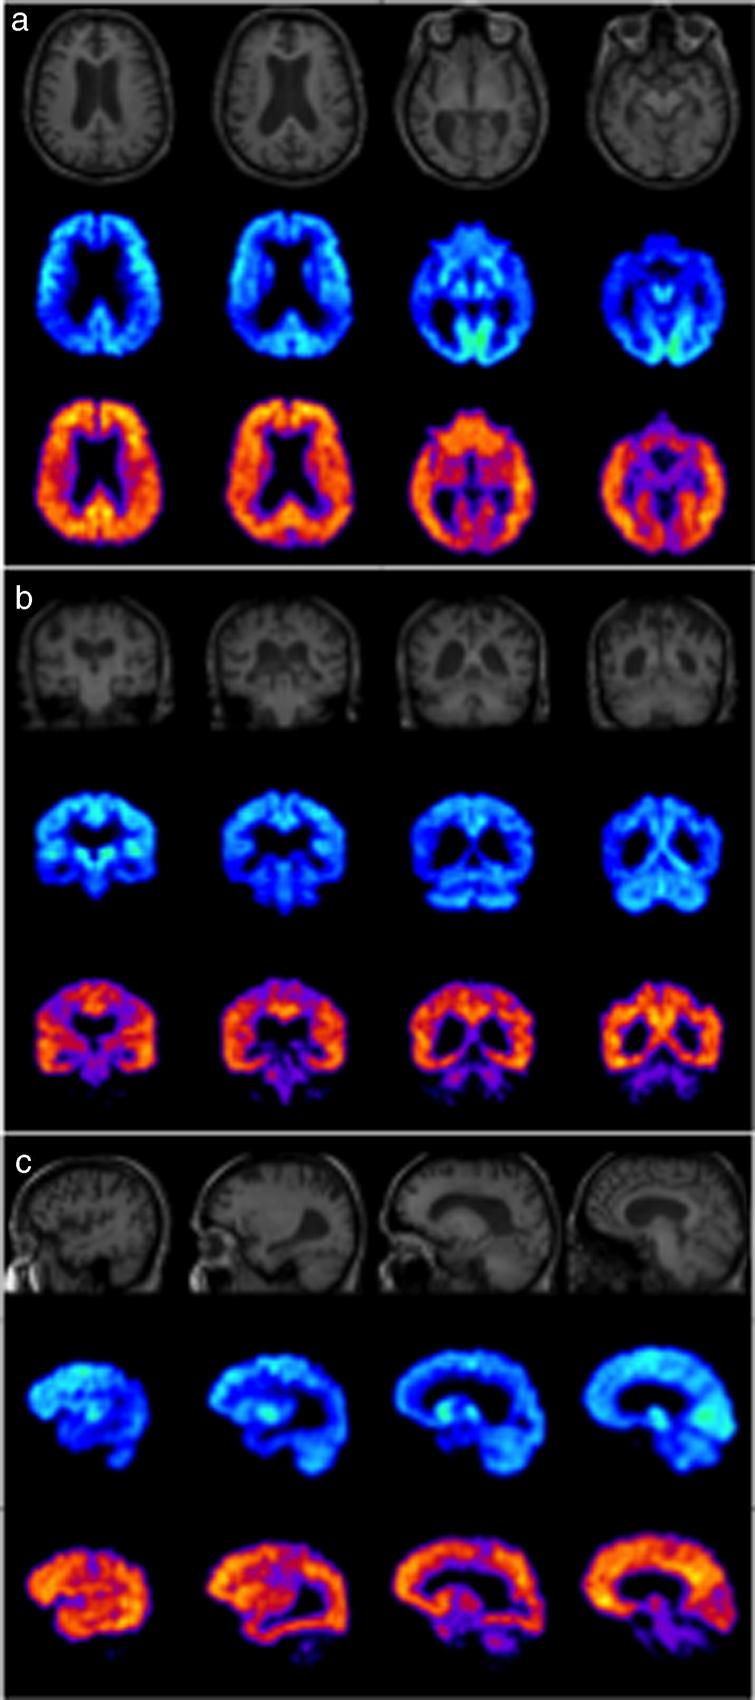 MRI (top), FDG-PET (middle), and PiB-PET (bottom) images of a typical AD case in axial (a), coronal (b) and sagittal (c) planes showing hypometabolism in parietal and temporal lobes in FDG-PET and extensive cortical amyloid deposition in PiB-PET.